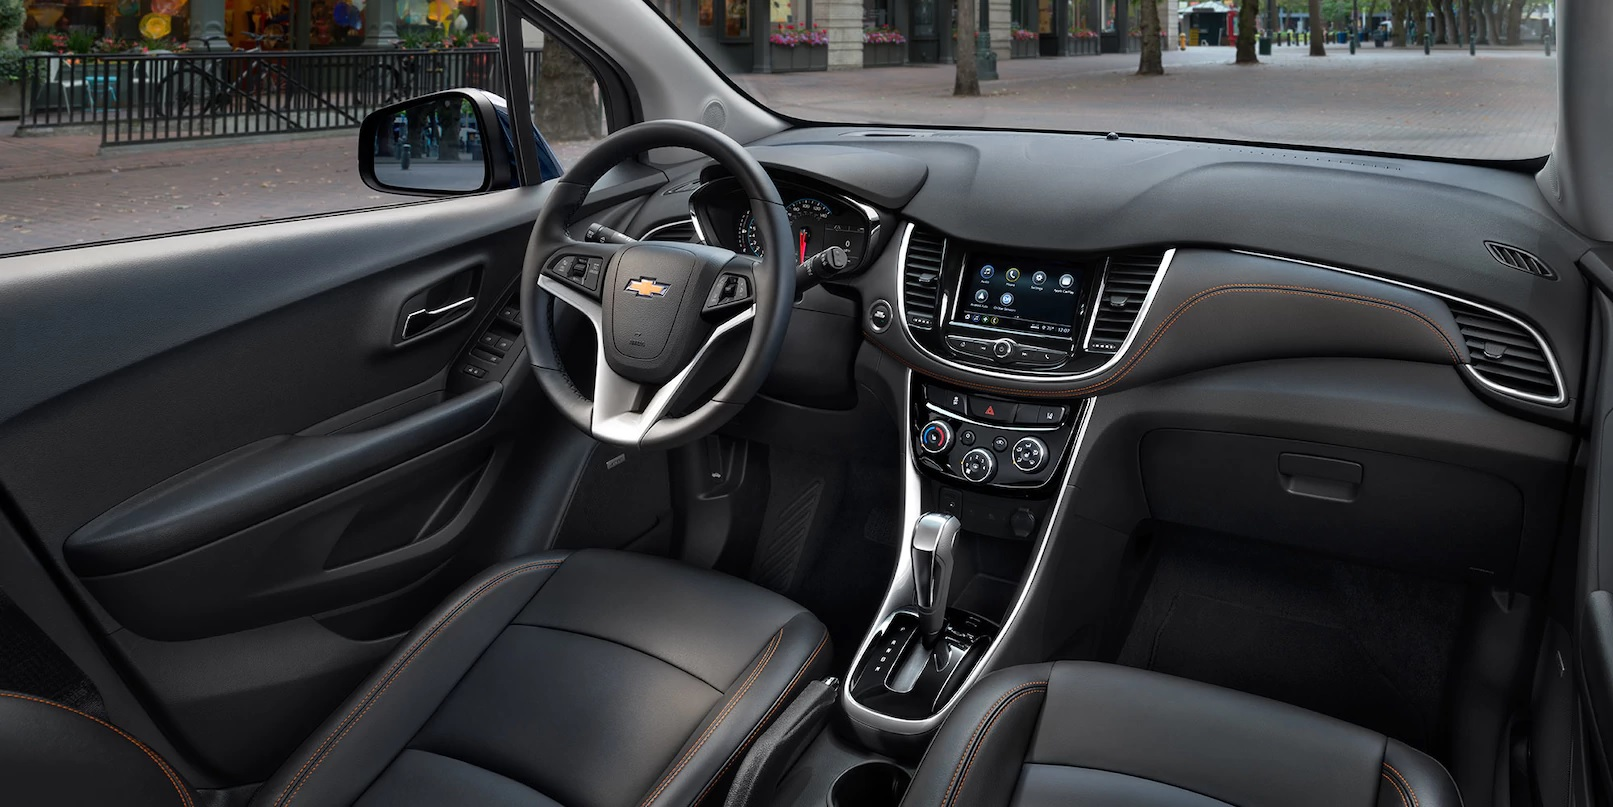 2018 chevrolet trax financing in sylvania oh dave white chevrolet interior of the 2018 chevrolet trax sciox Gallery